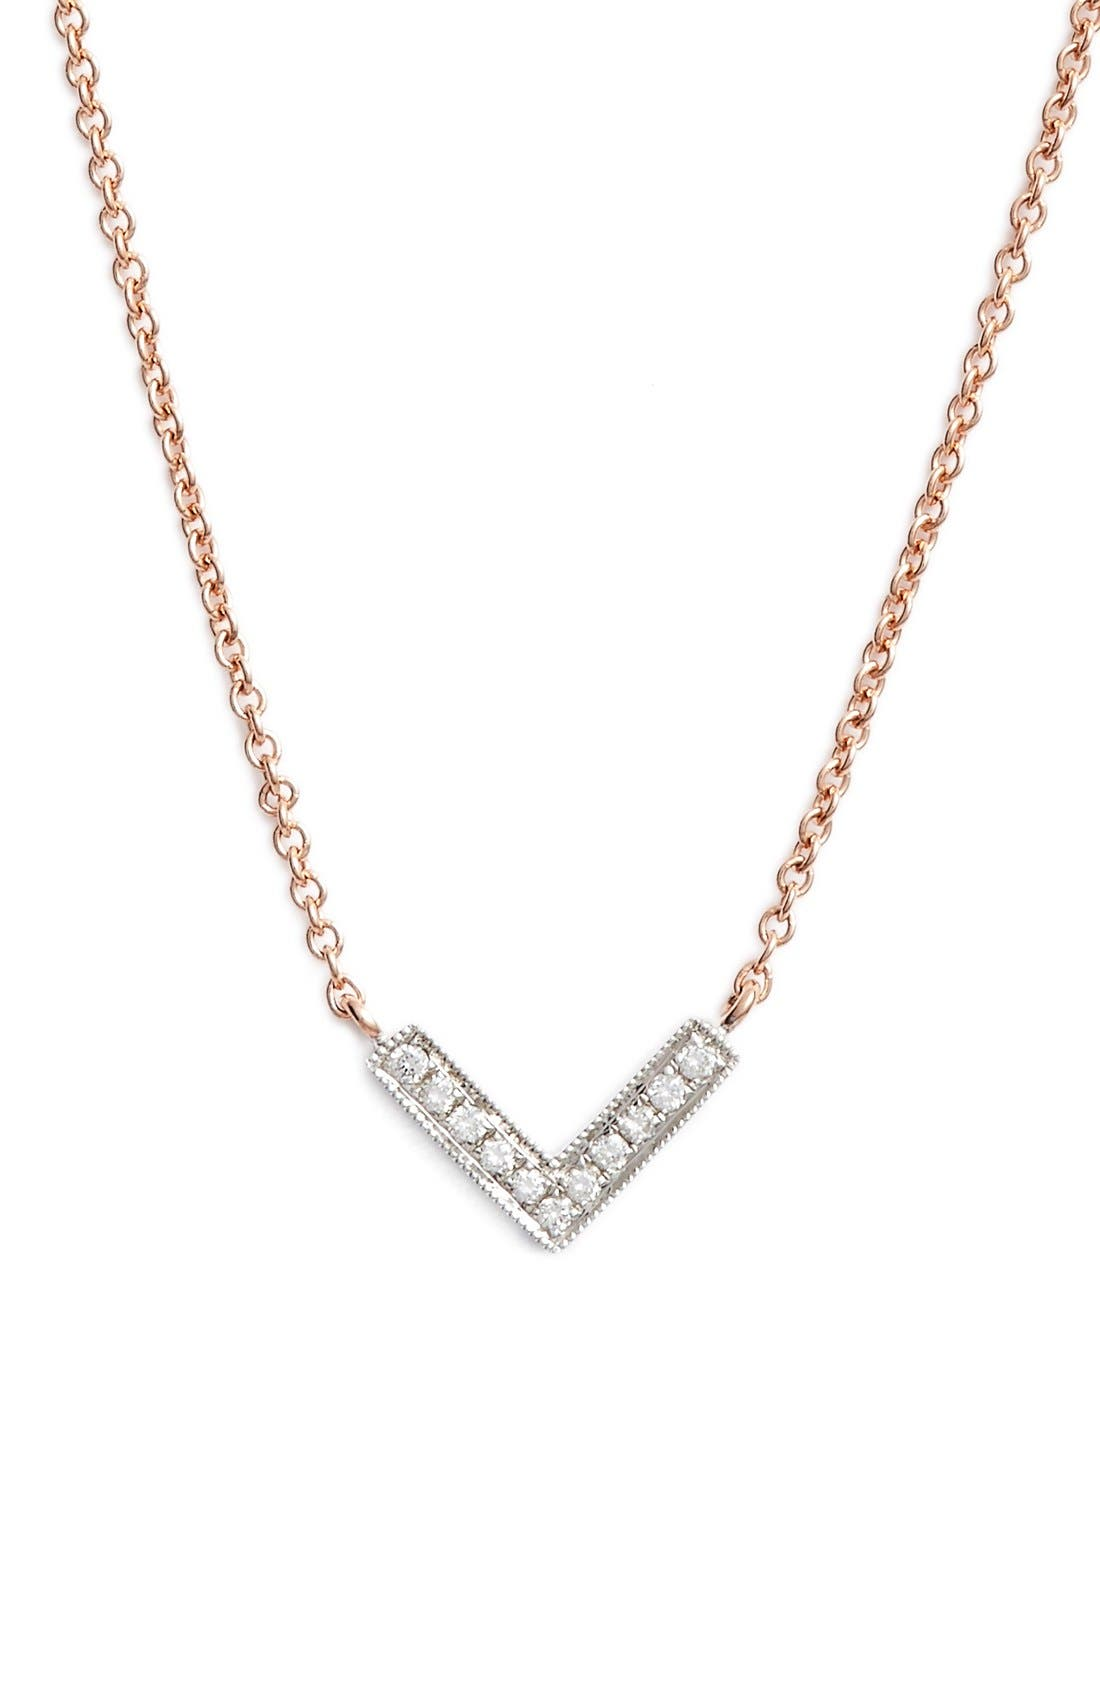 Alternate Image 1 Selected - Dana Rebecca Designs 'Sylvie Rose' Diamond V Pendant Necklace